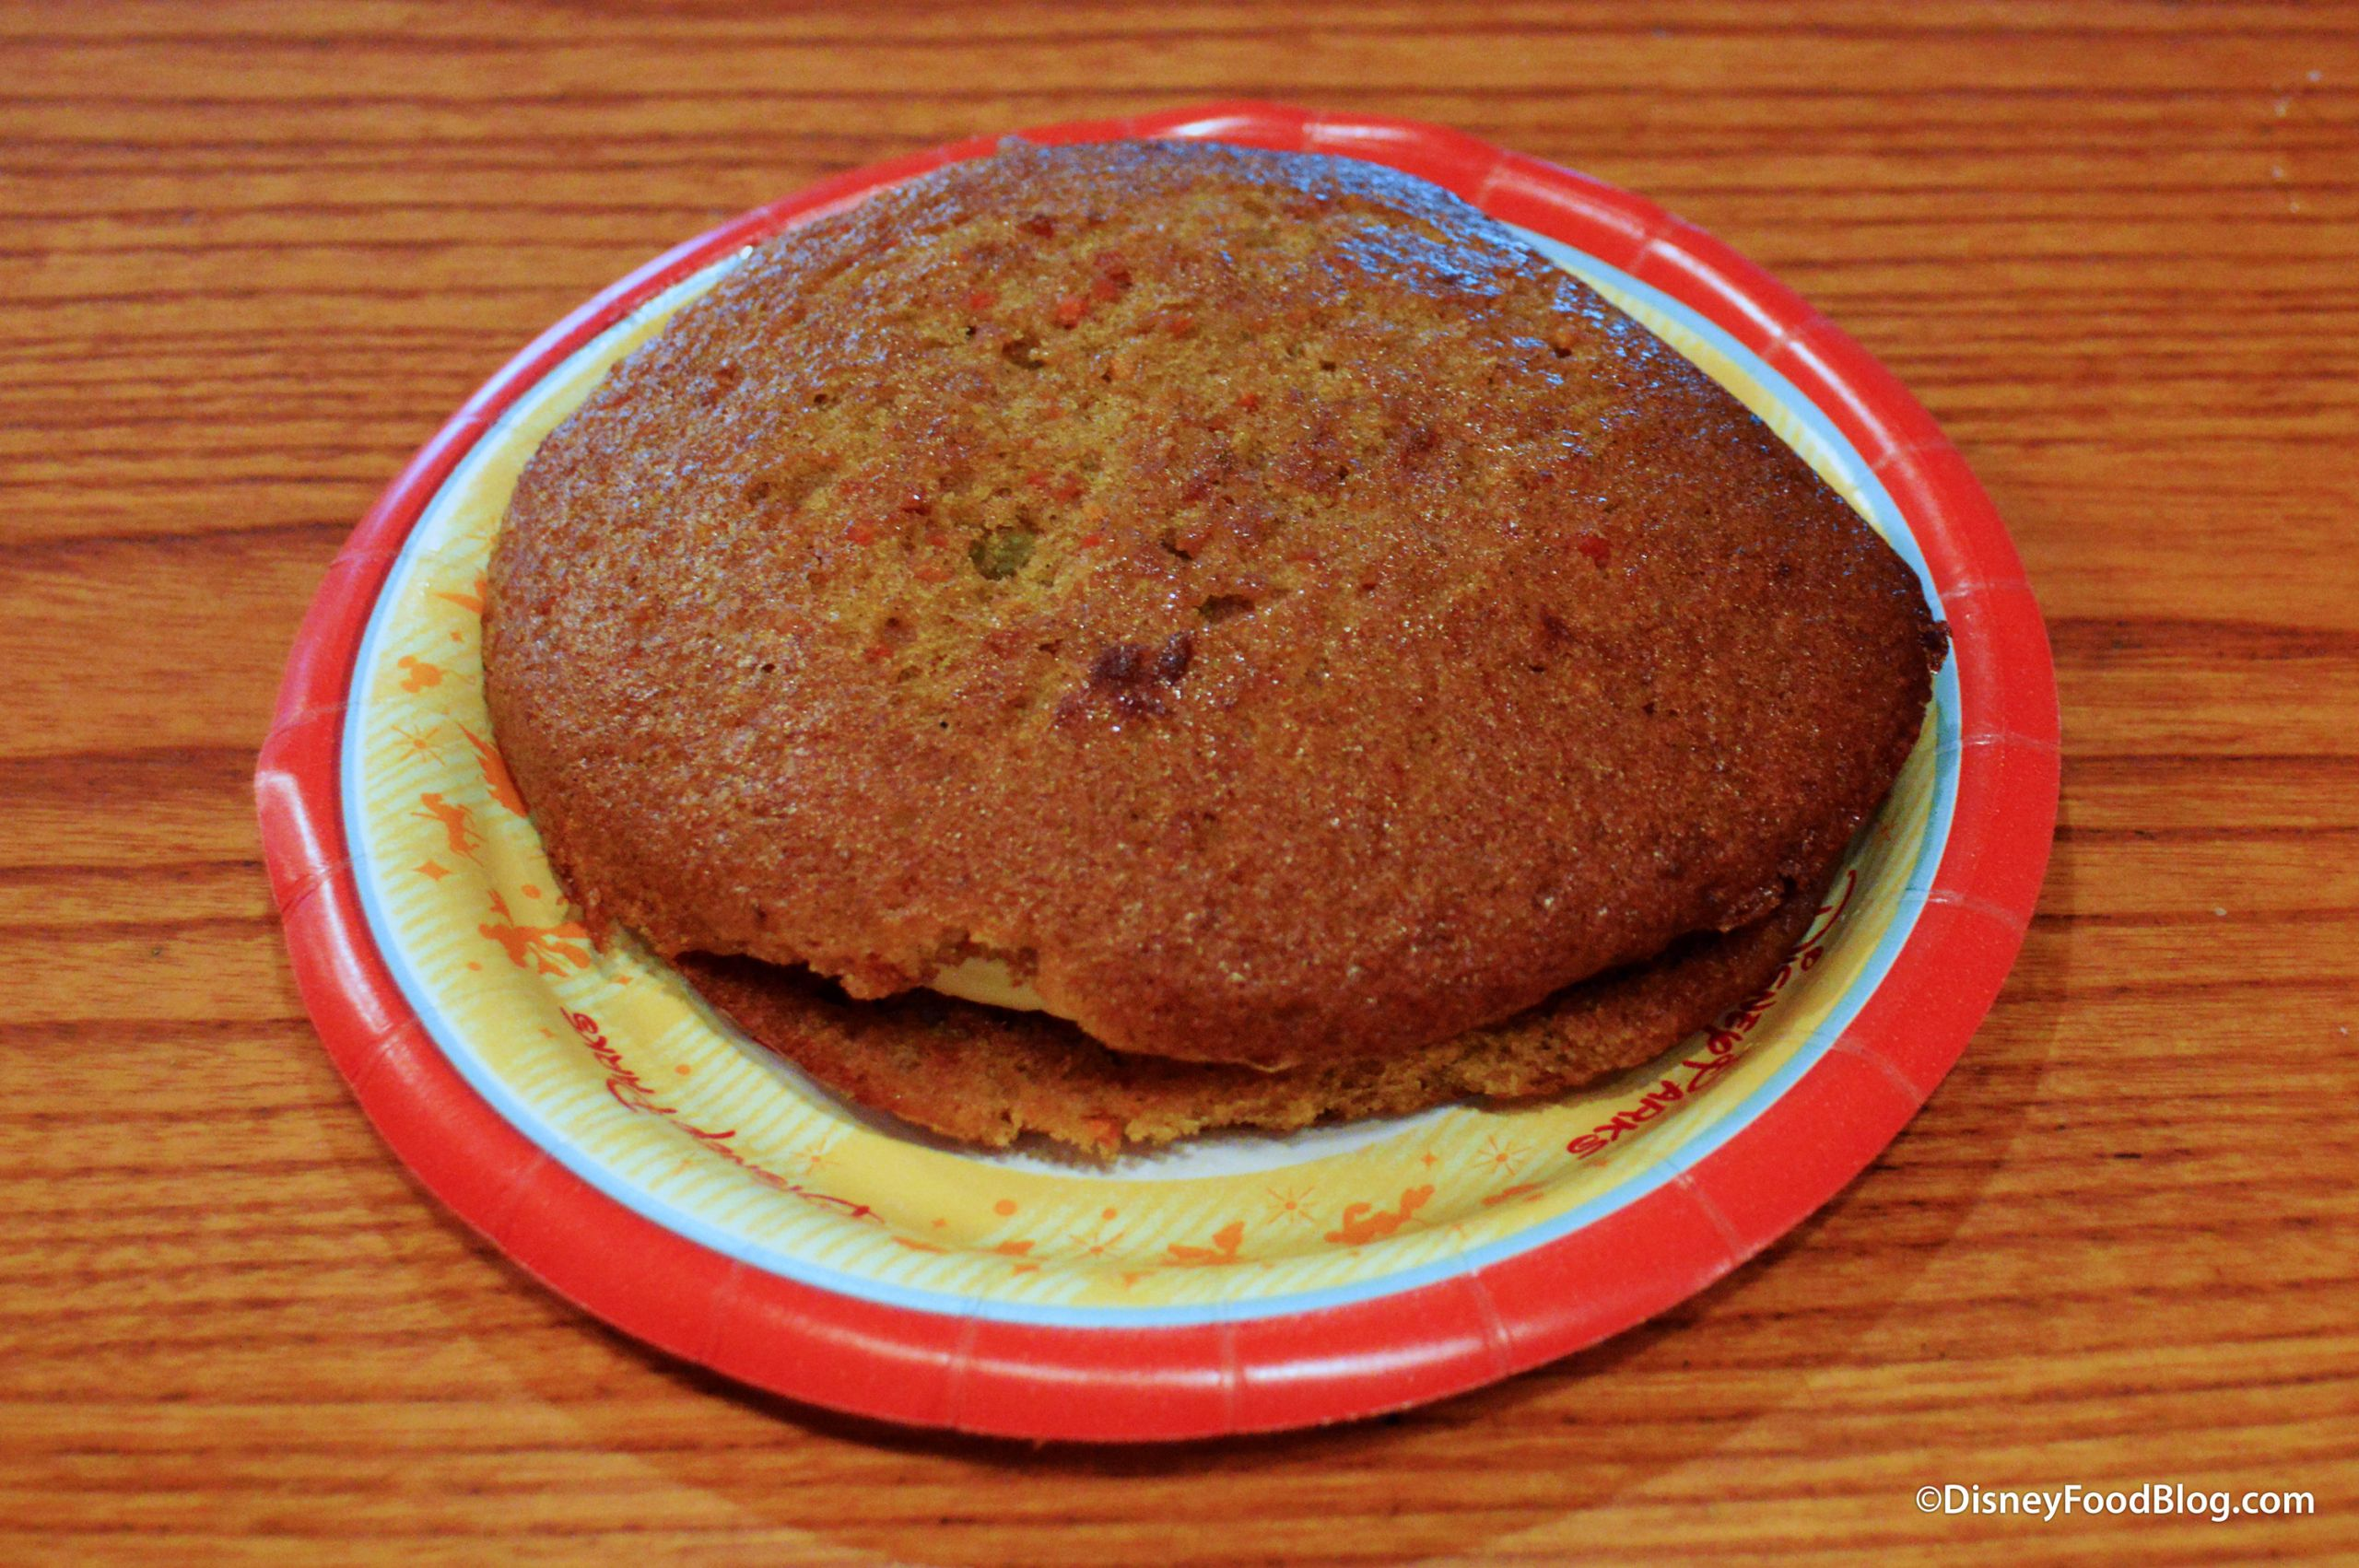 Carrot Cake Cookie Disney  TheList Carrot Cake Cookie in Disney's Hollywood Studios